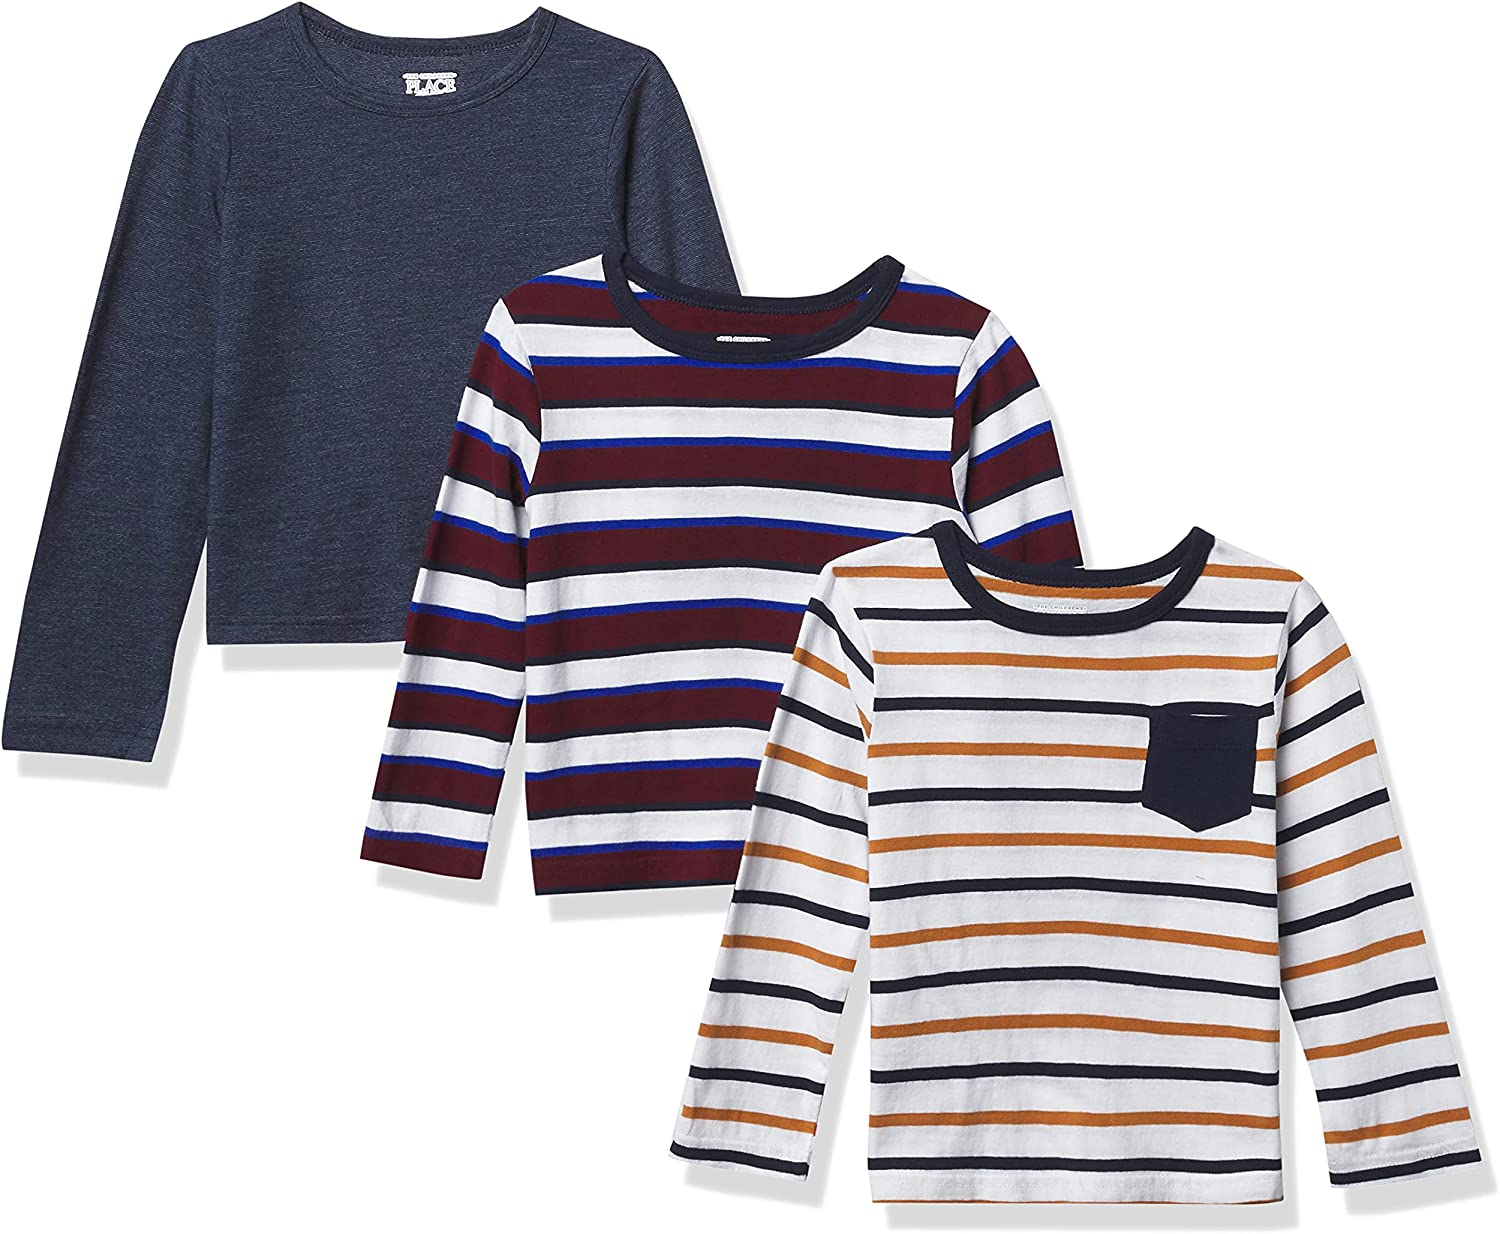 The Children's Place and Toddler Boy Long Sleeve Striped Top 3-Pack